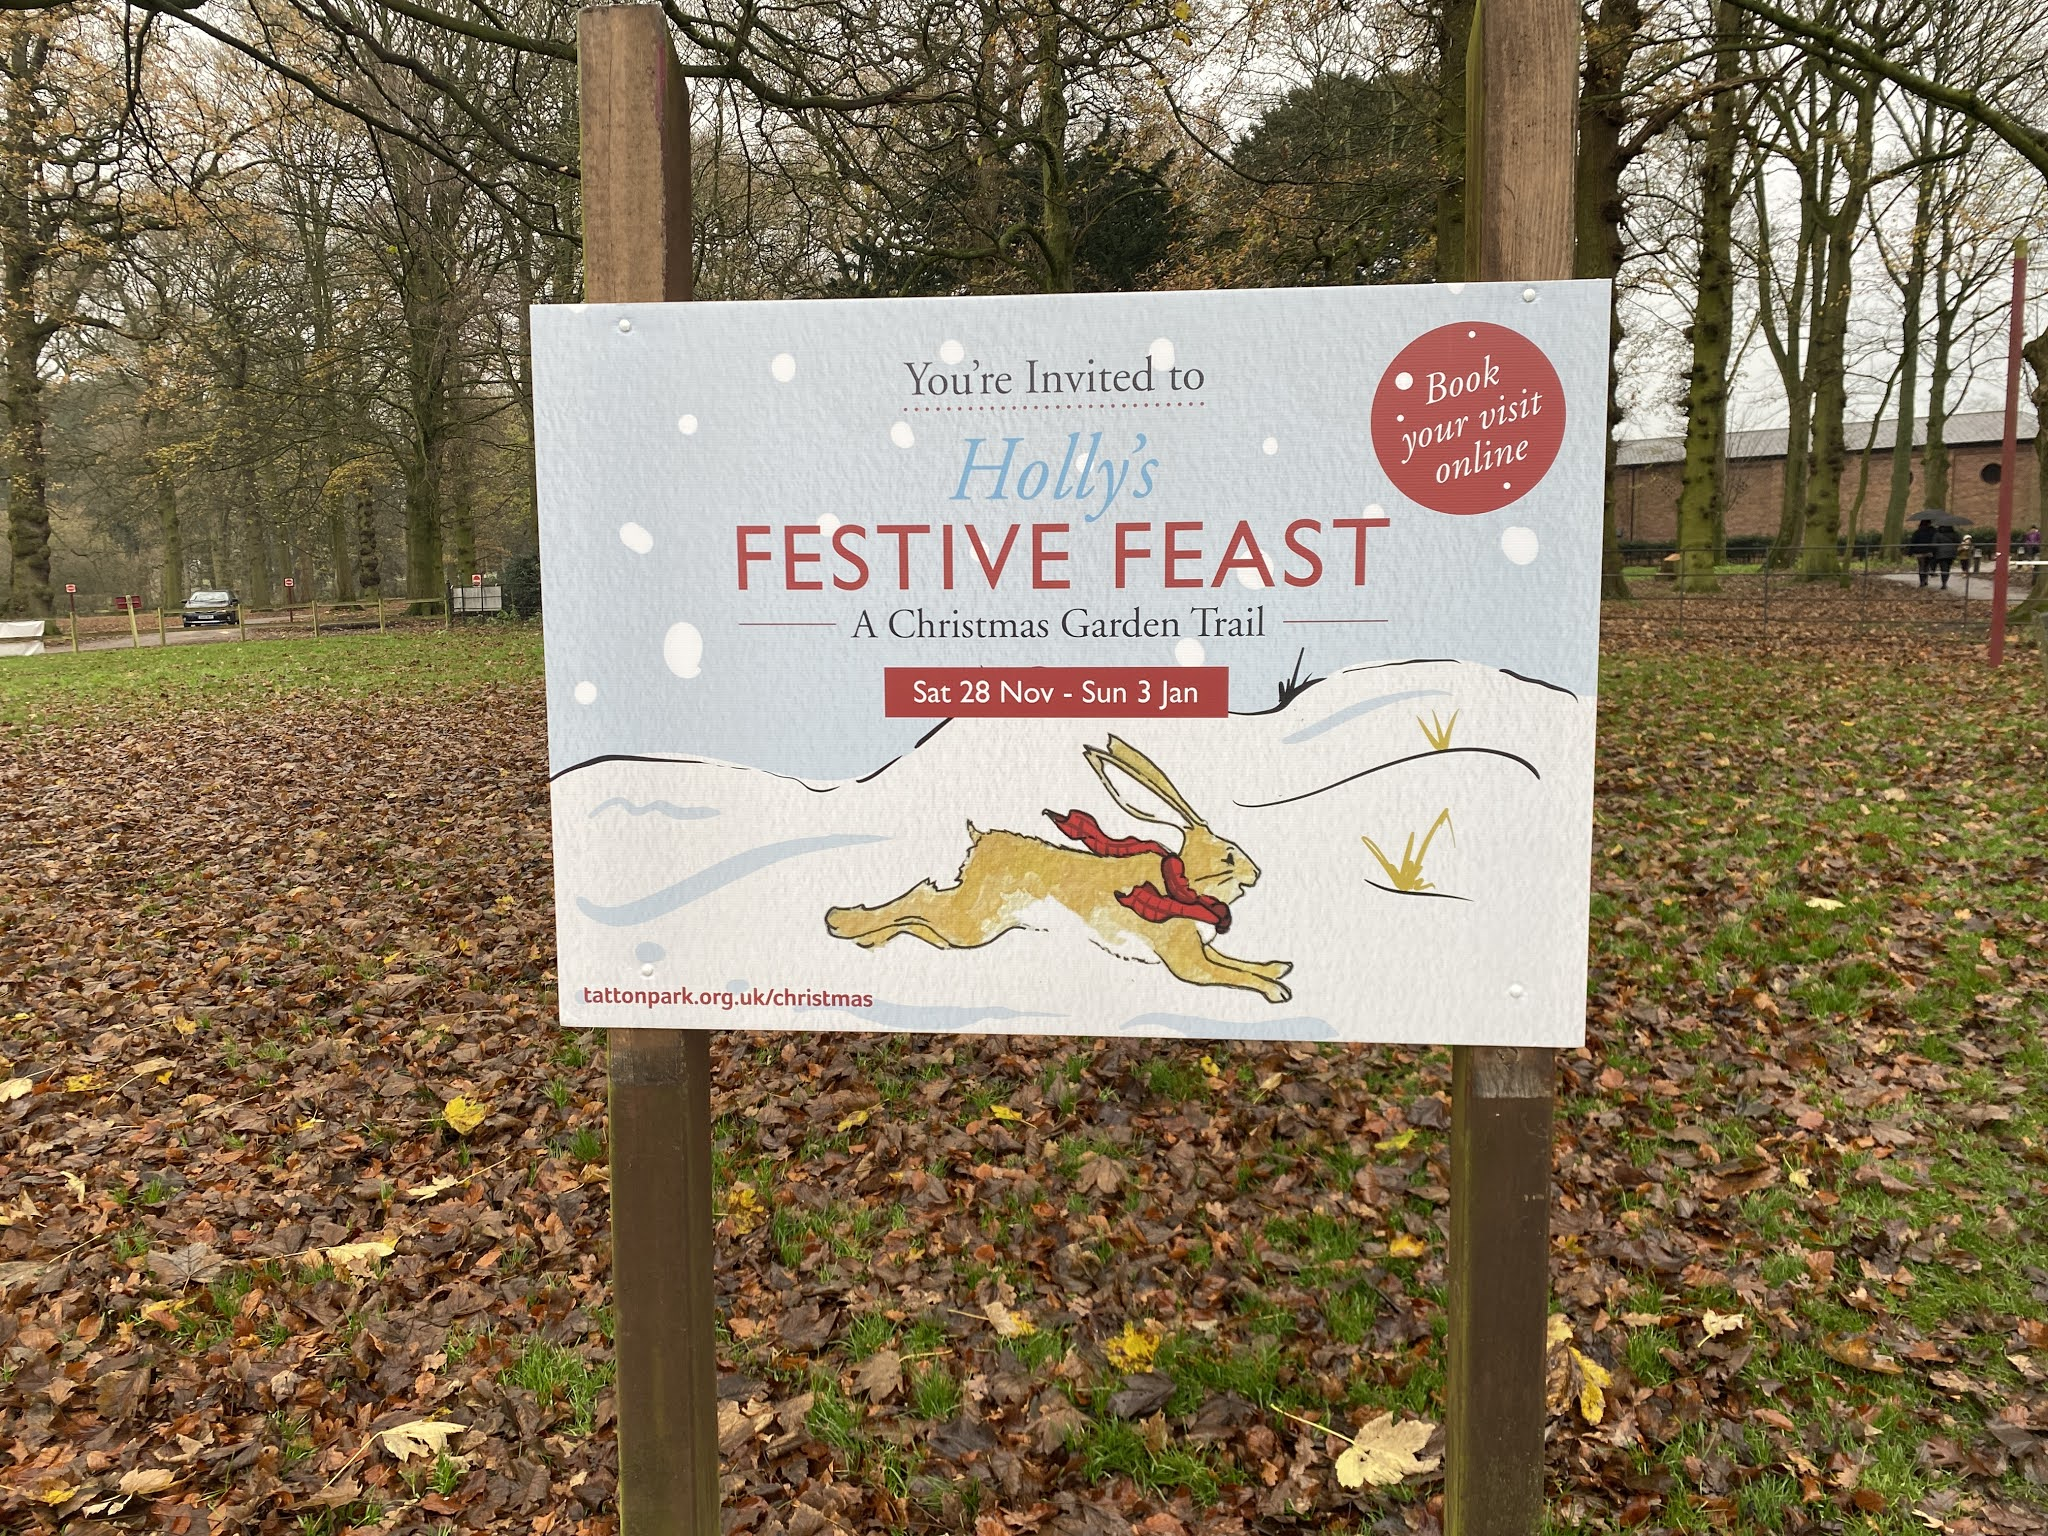 holly's festive feast sign